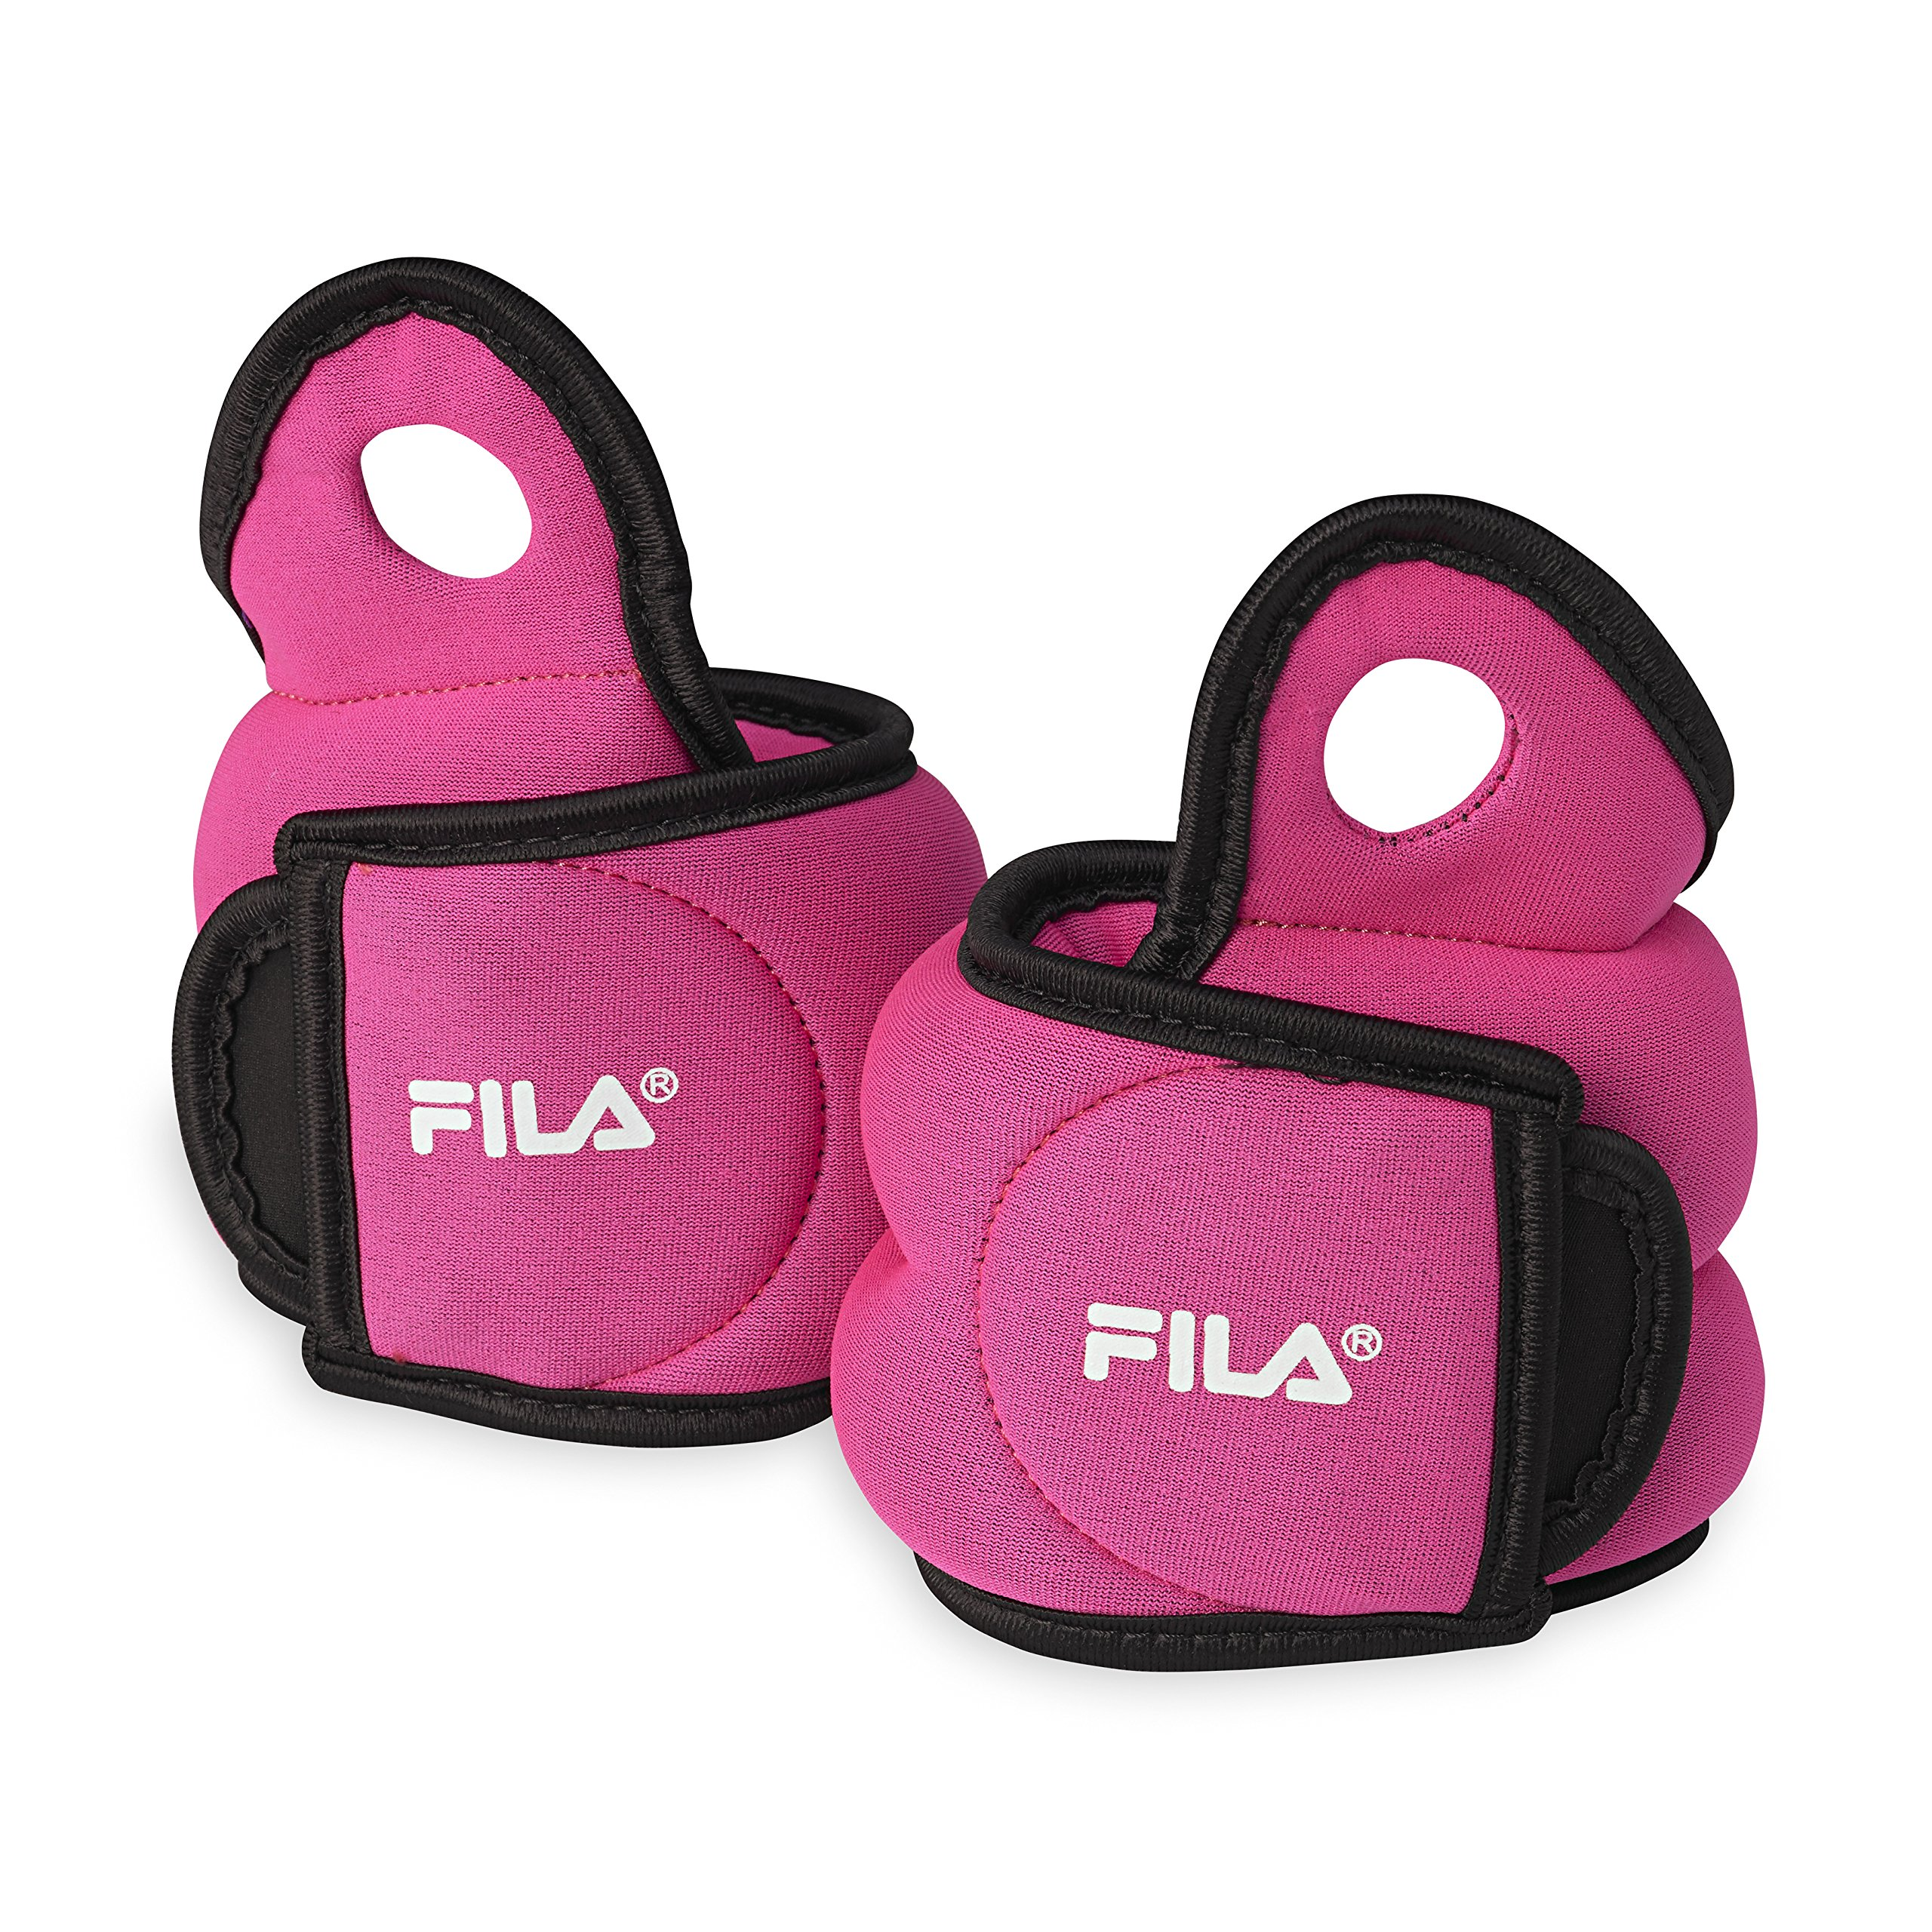 FILA Accessories Wrist Weights Set, 4lb Set (2lbs Each) by FILA Accessories